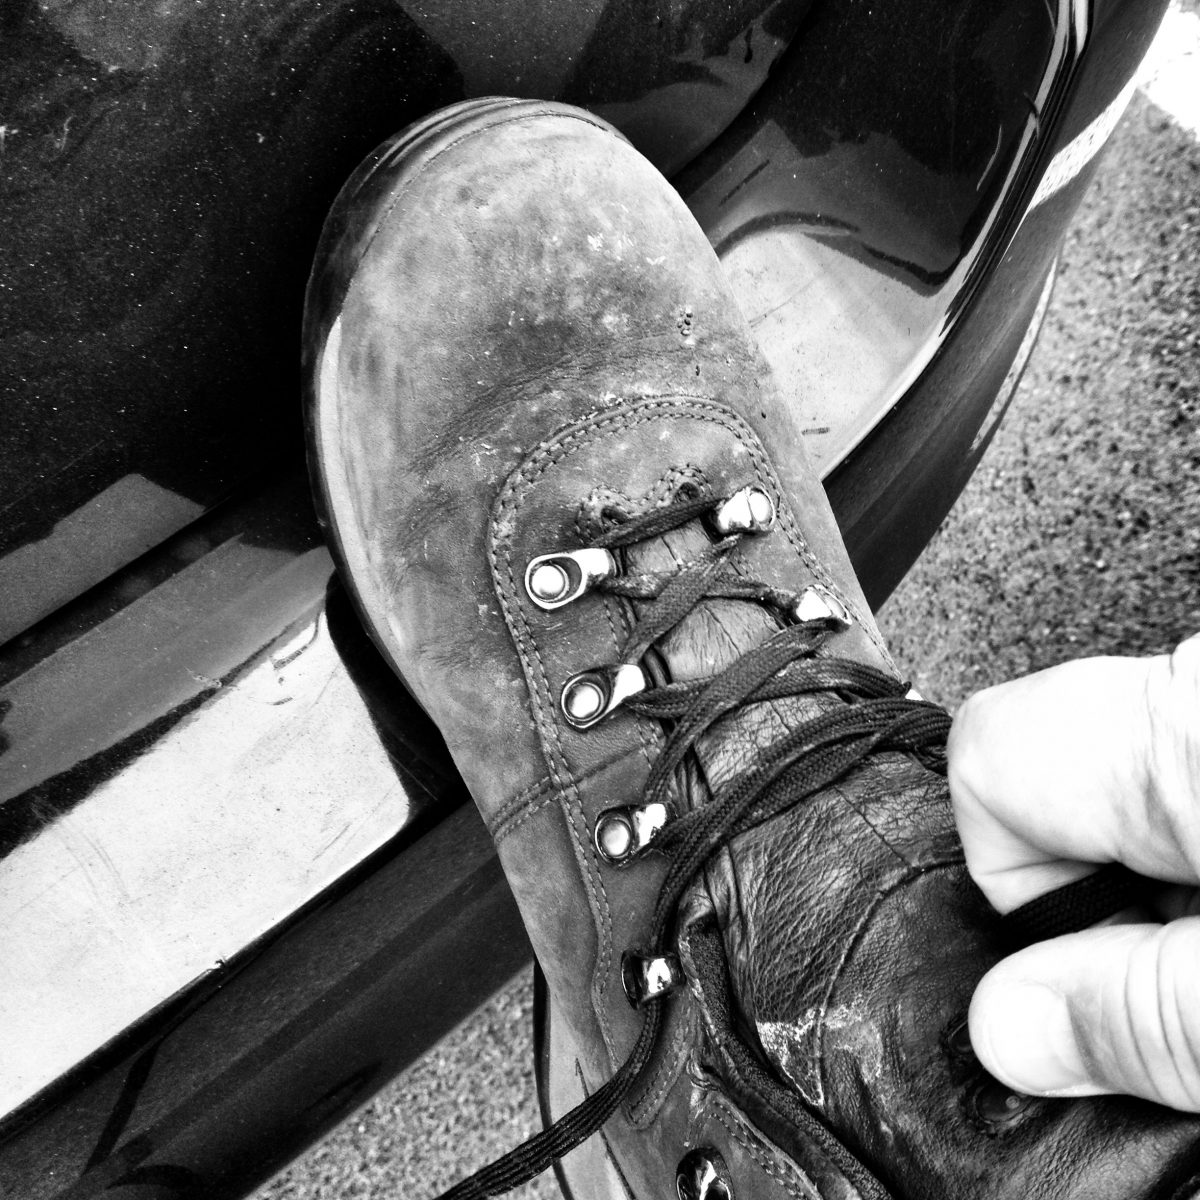 When I lace up my hiking boots, I know I'm in for a good day. Picture of a hiking boot in black and white